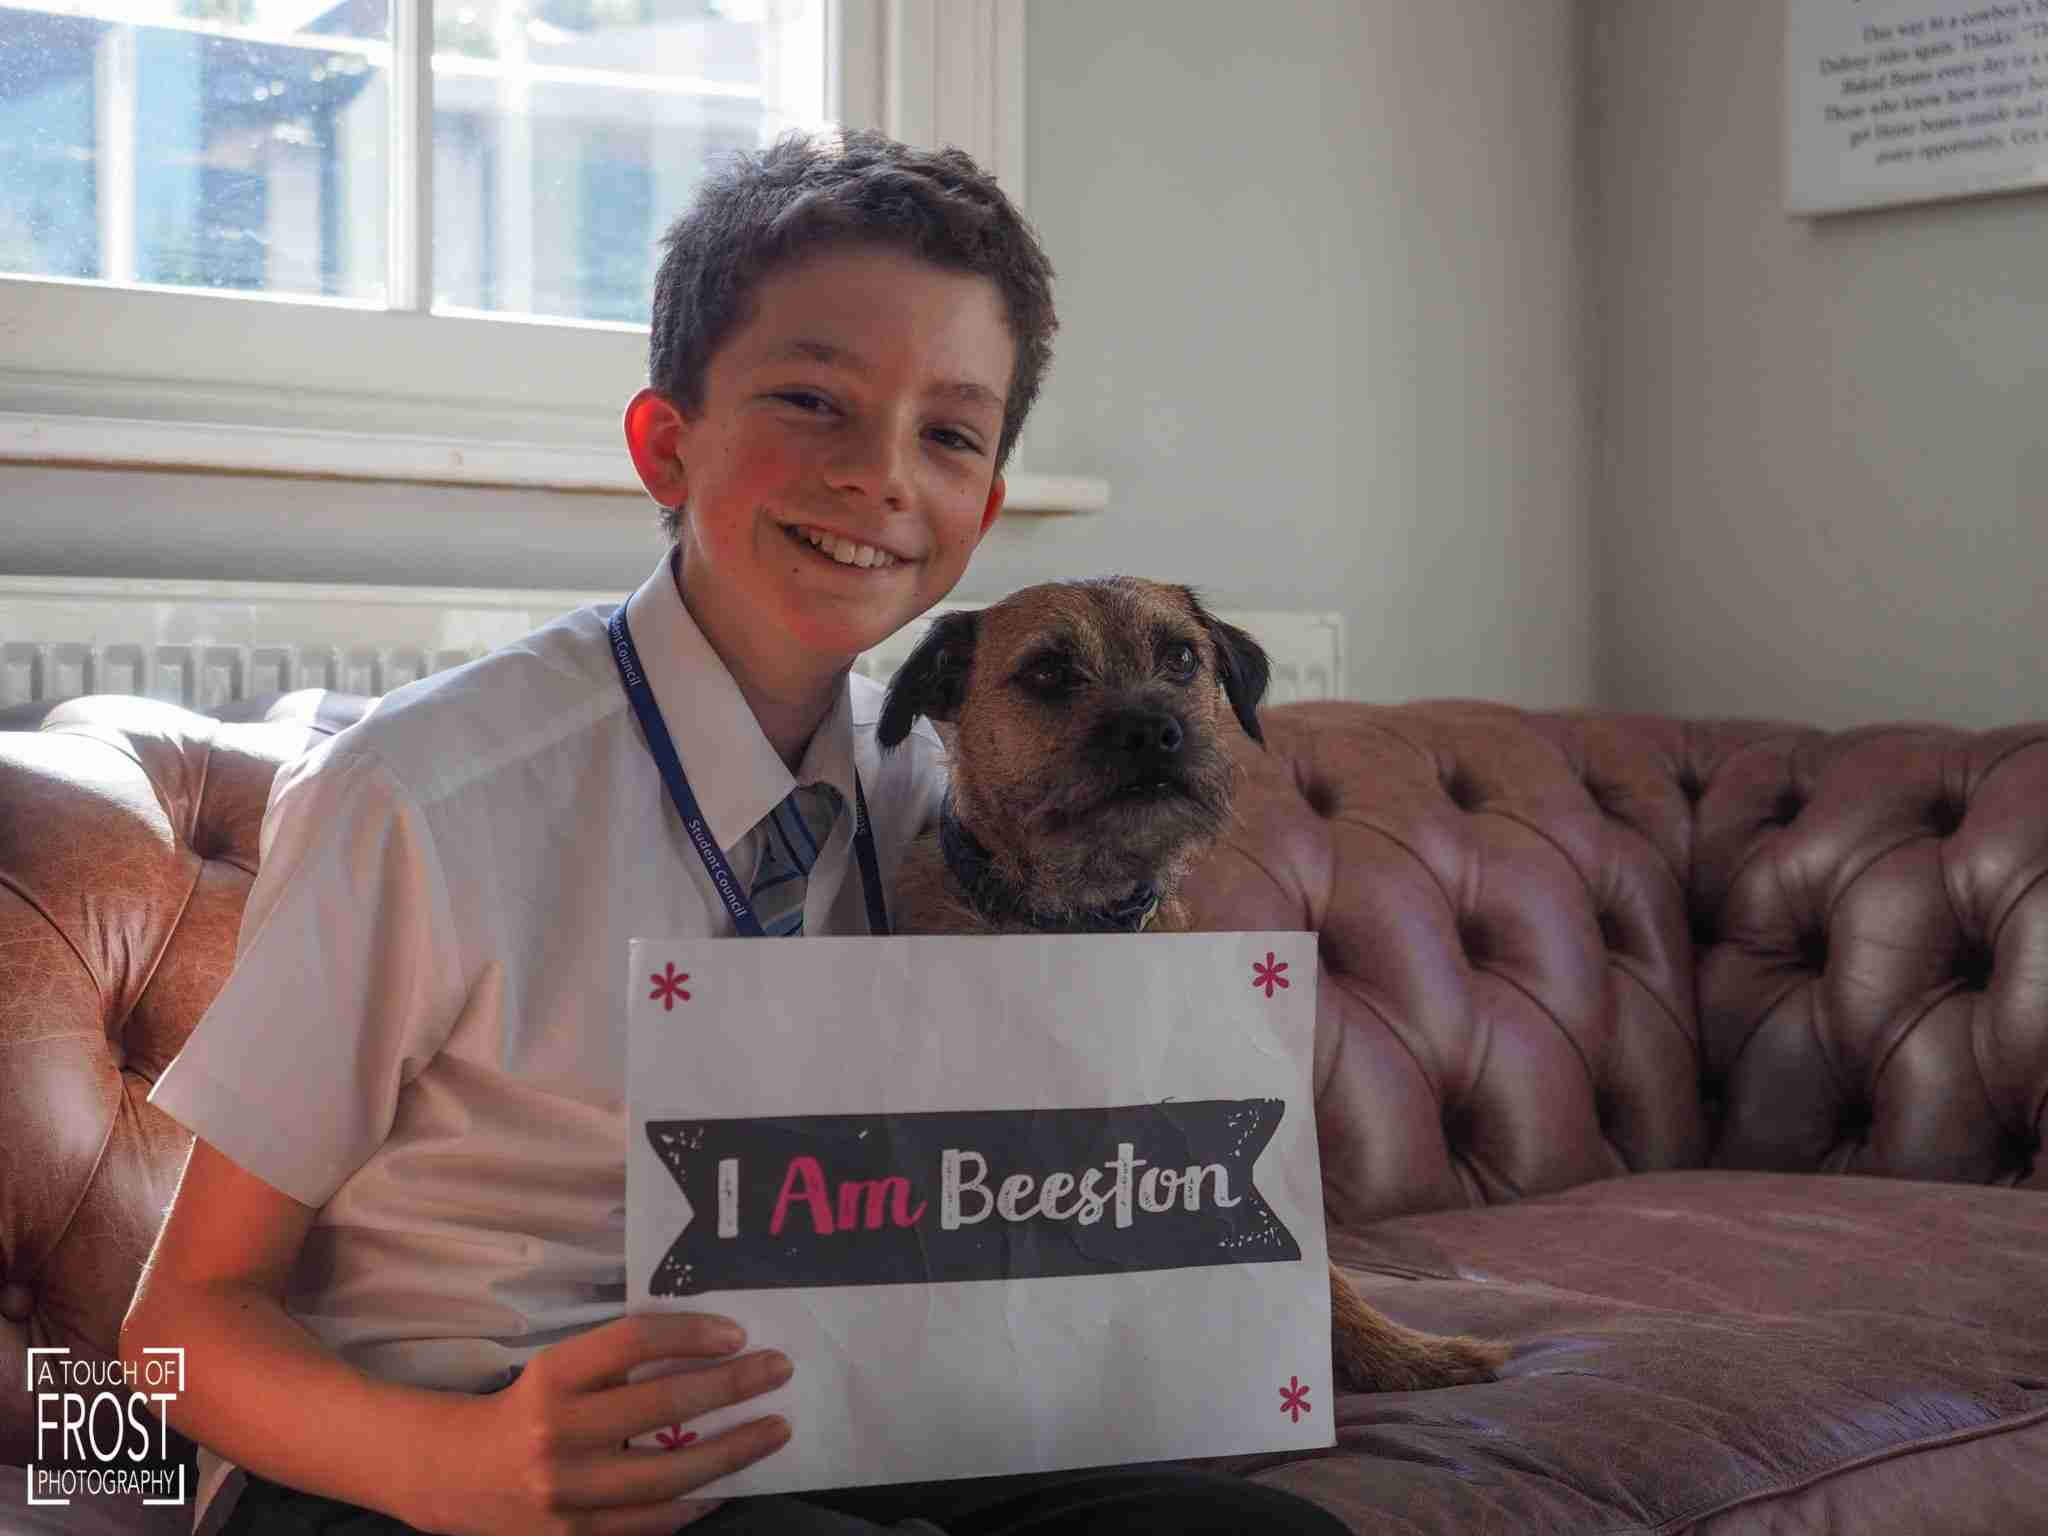 I Am Beeston: Alfie Russell, Broxtowe Youth Mayor